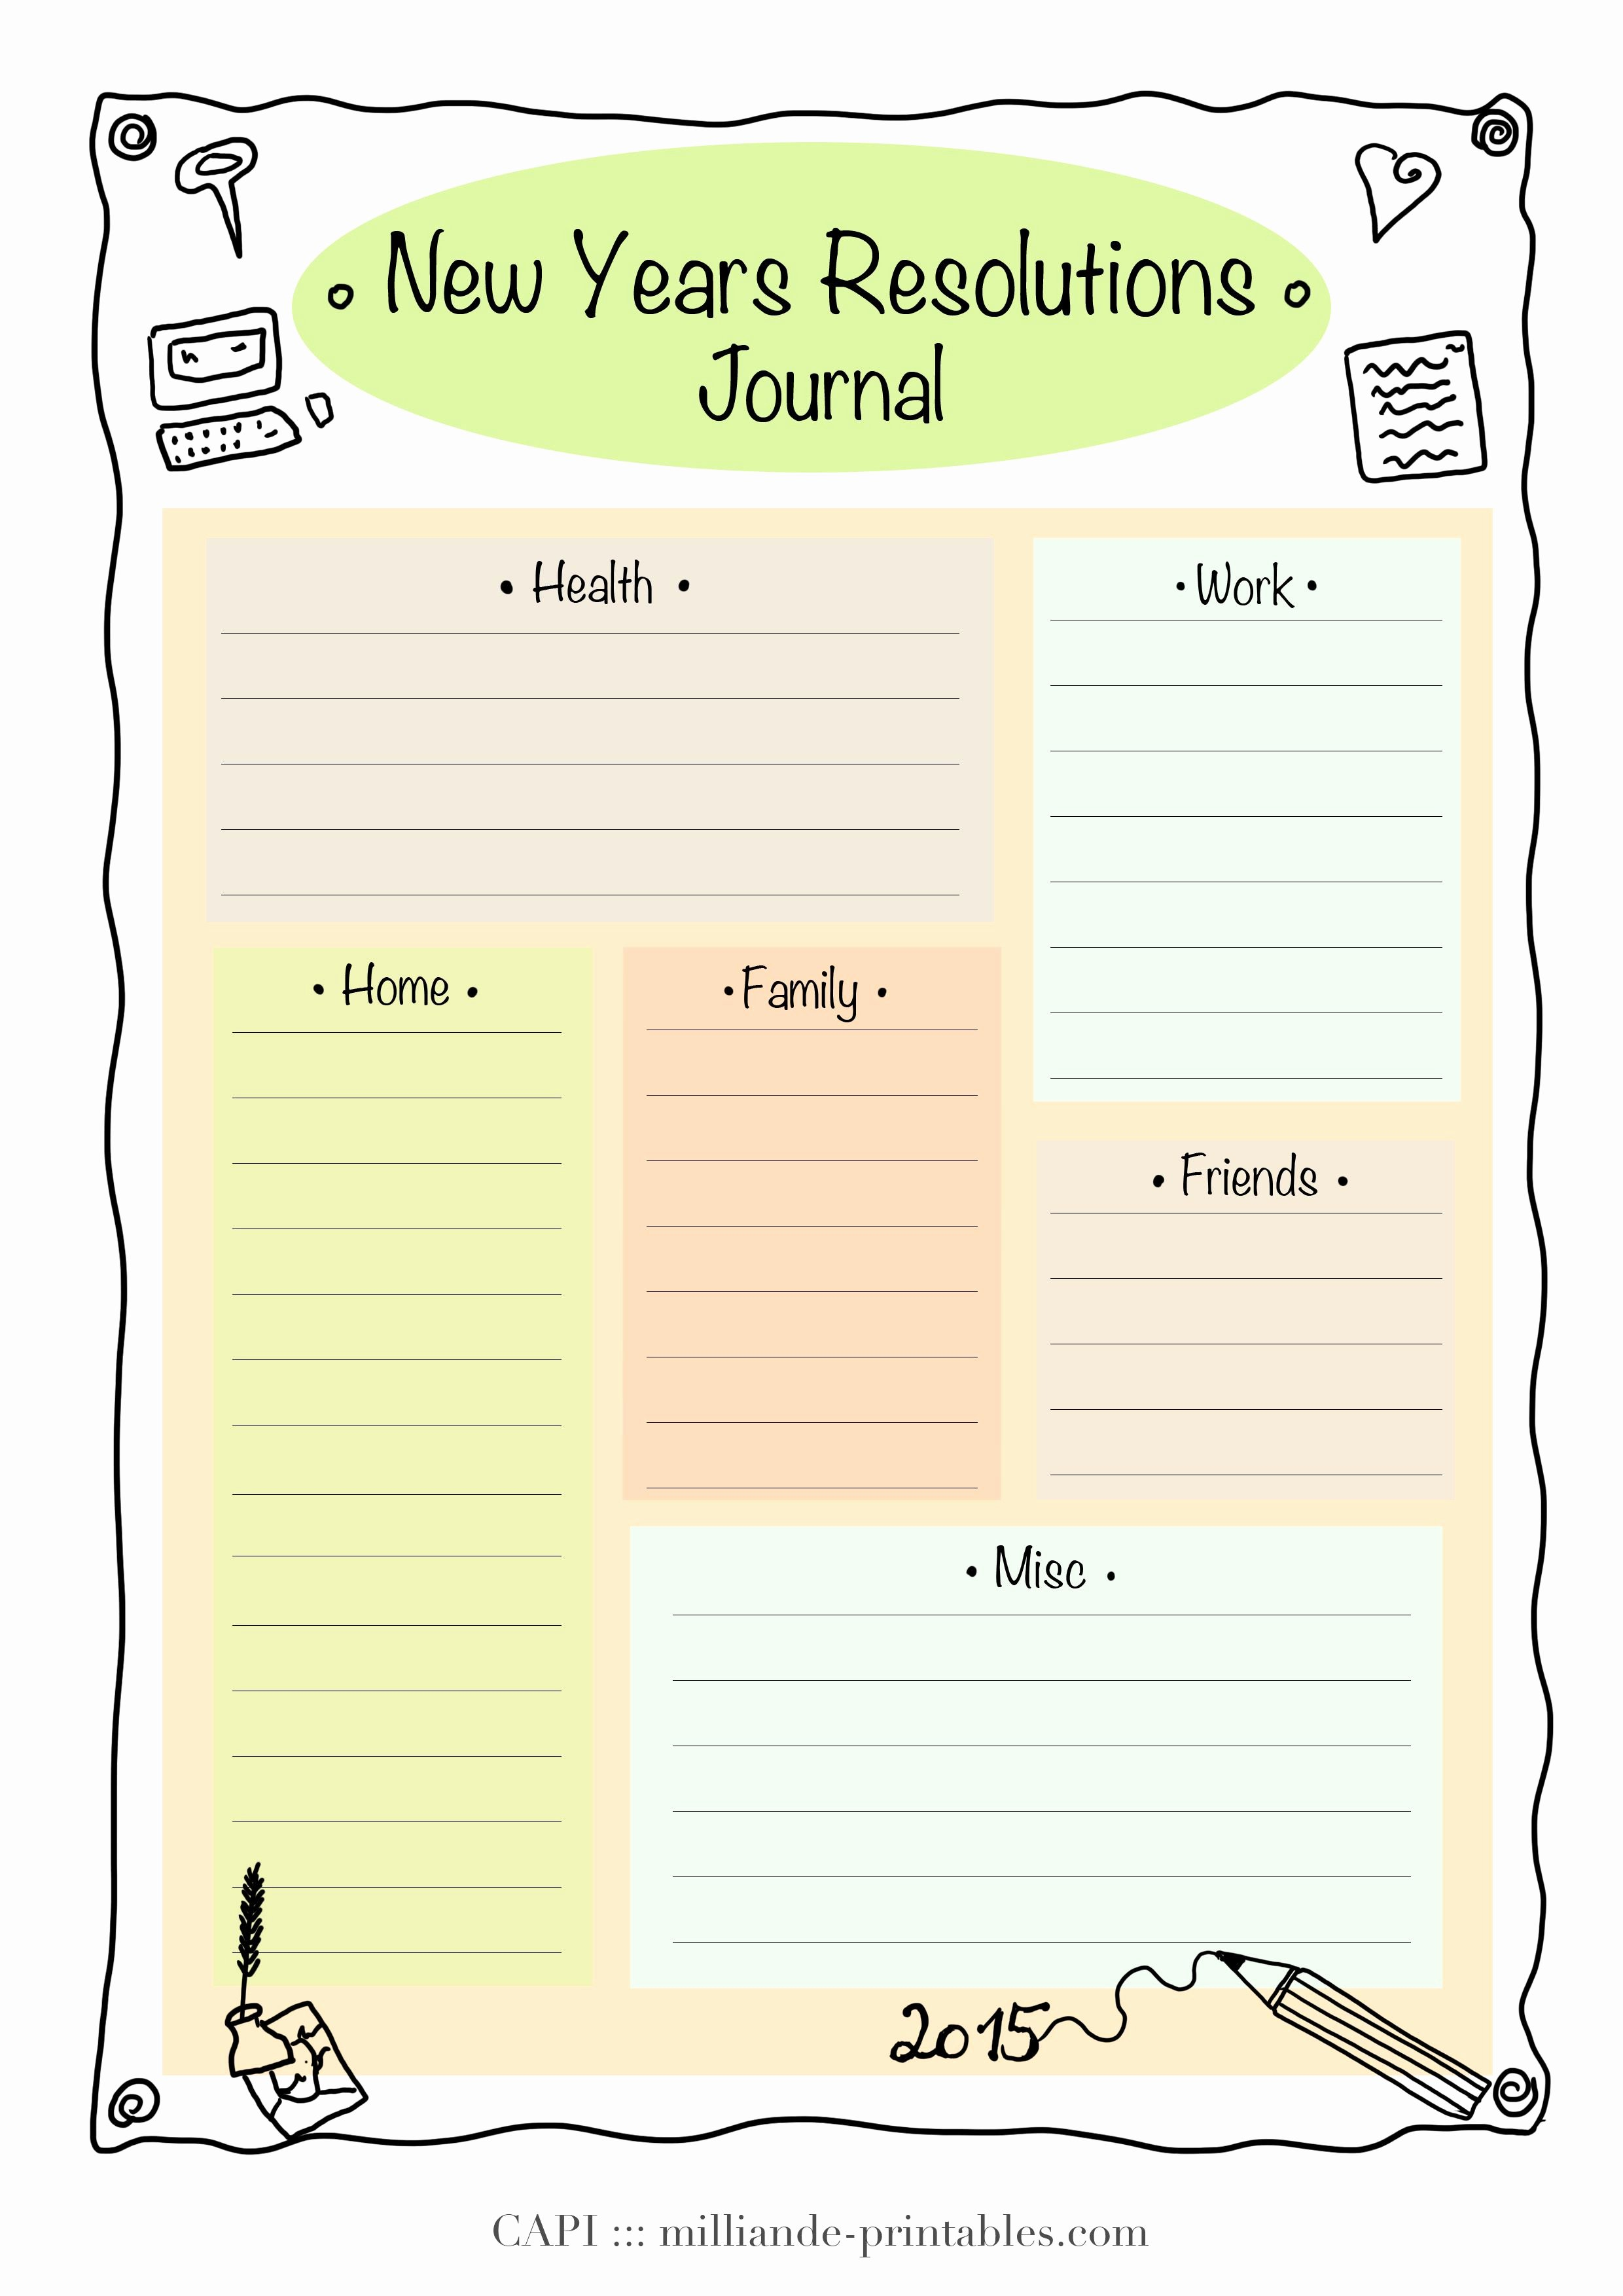 4 Year Plan Template Unique Resolution New Year Printable 2015 Day Planner Template